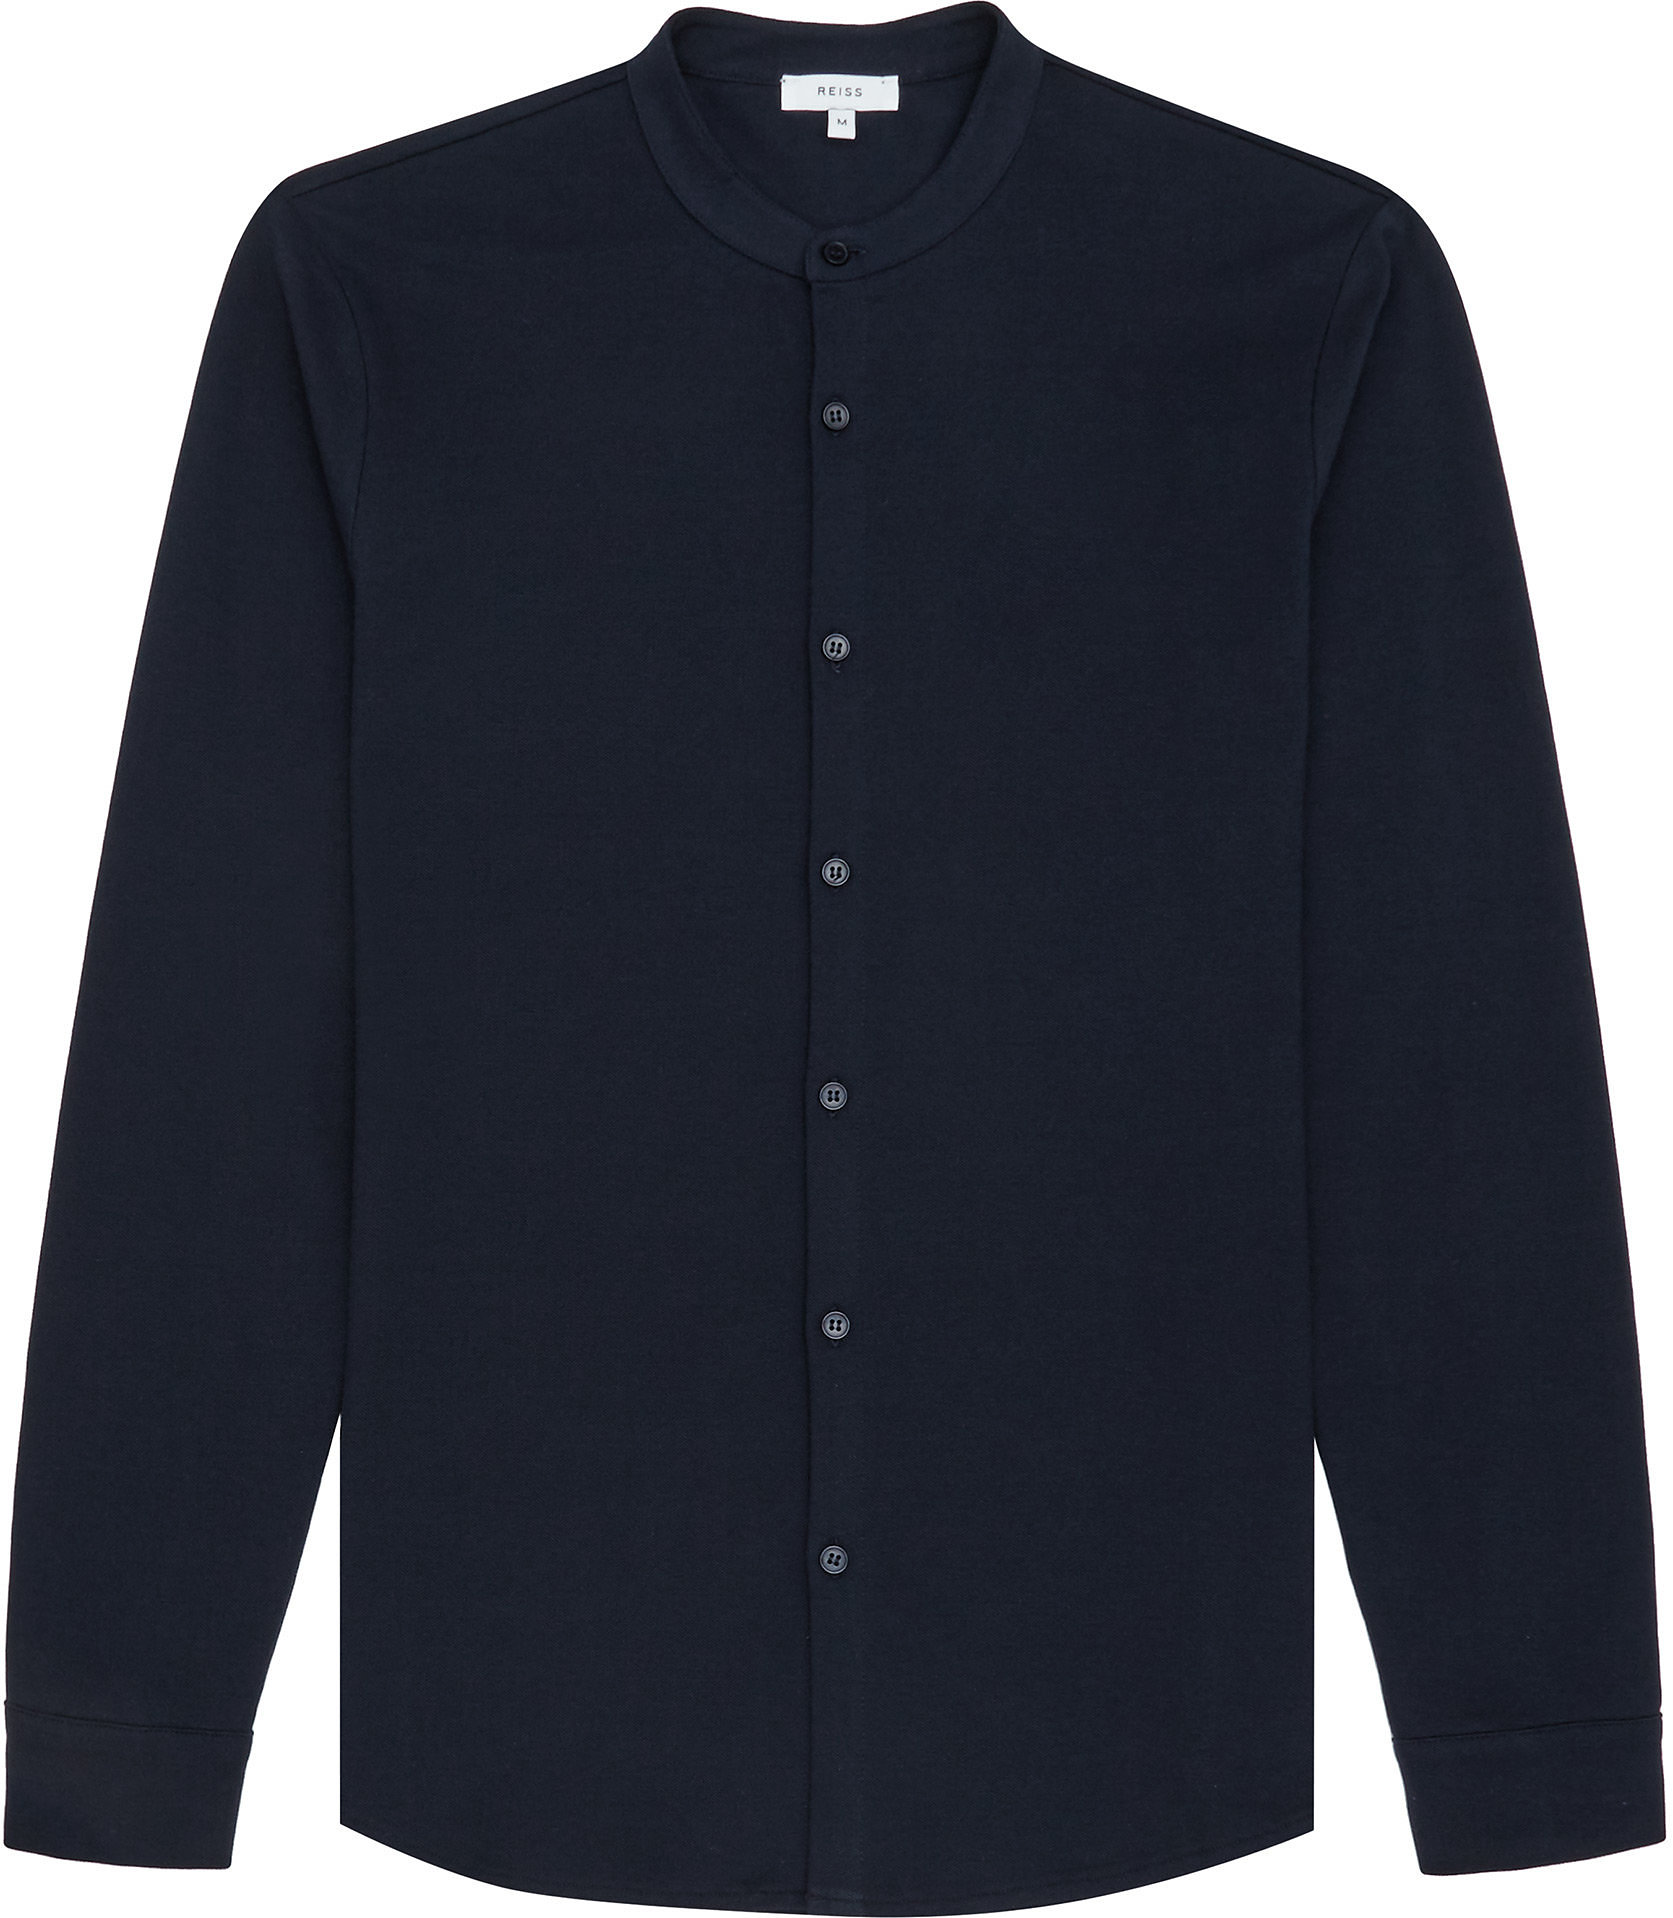 Navy Grandad Shirt